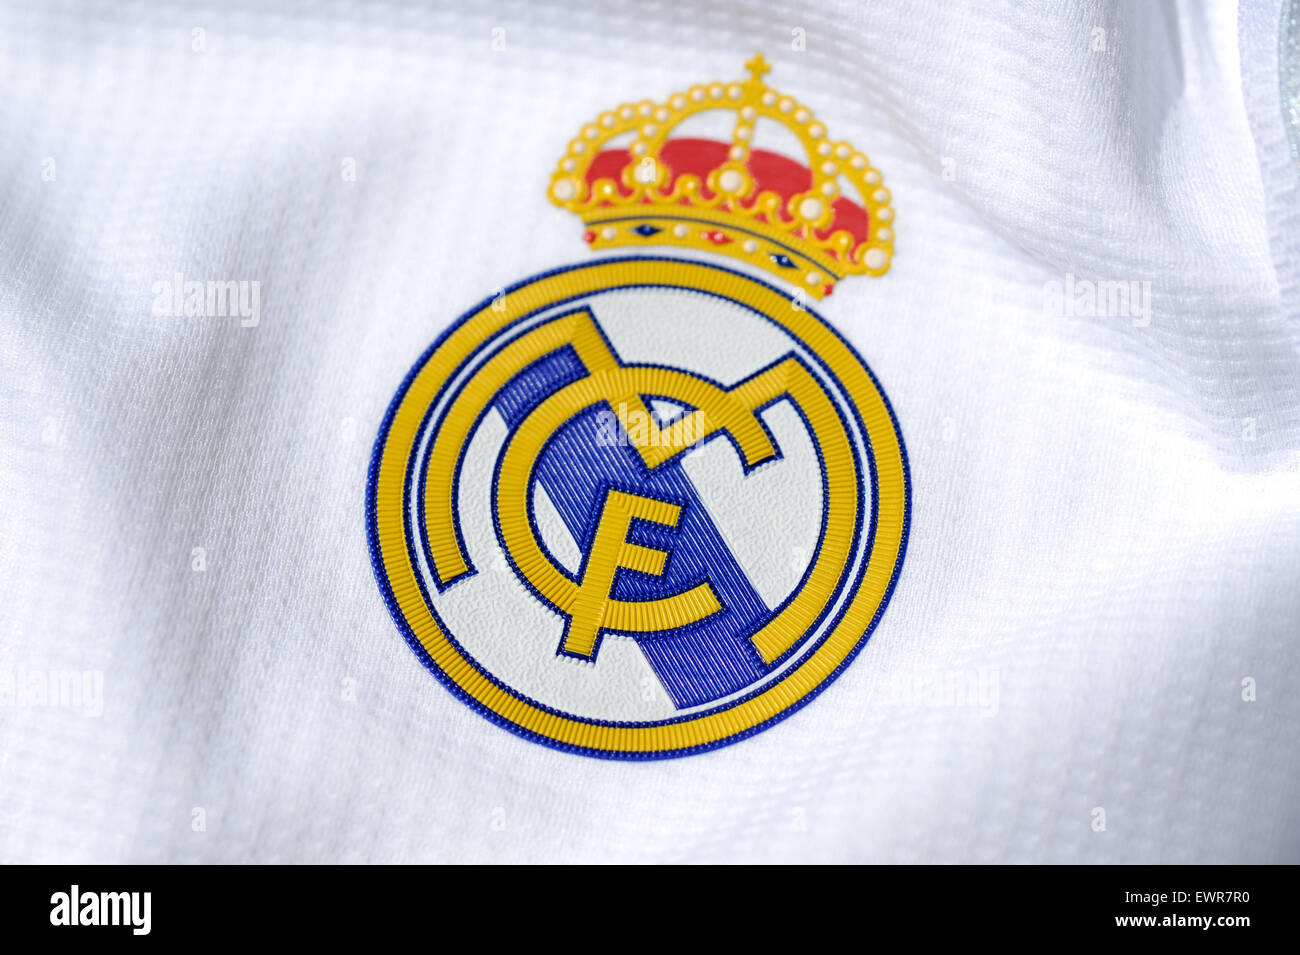 78d28b6c2ff Real Madrid Logo Stock Photos   Real Madrid Logo Stock Images - Alamy